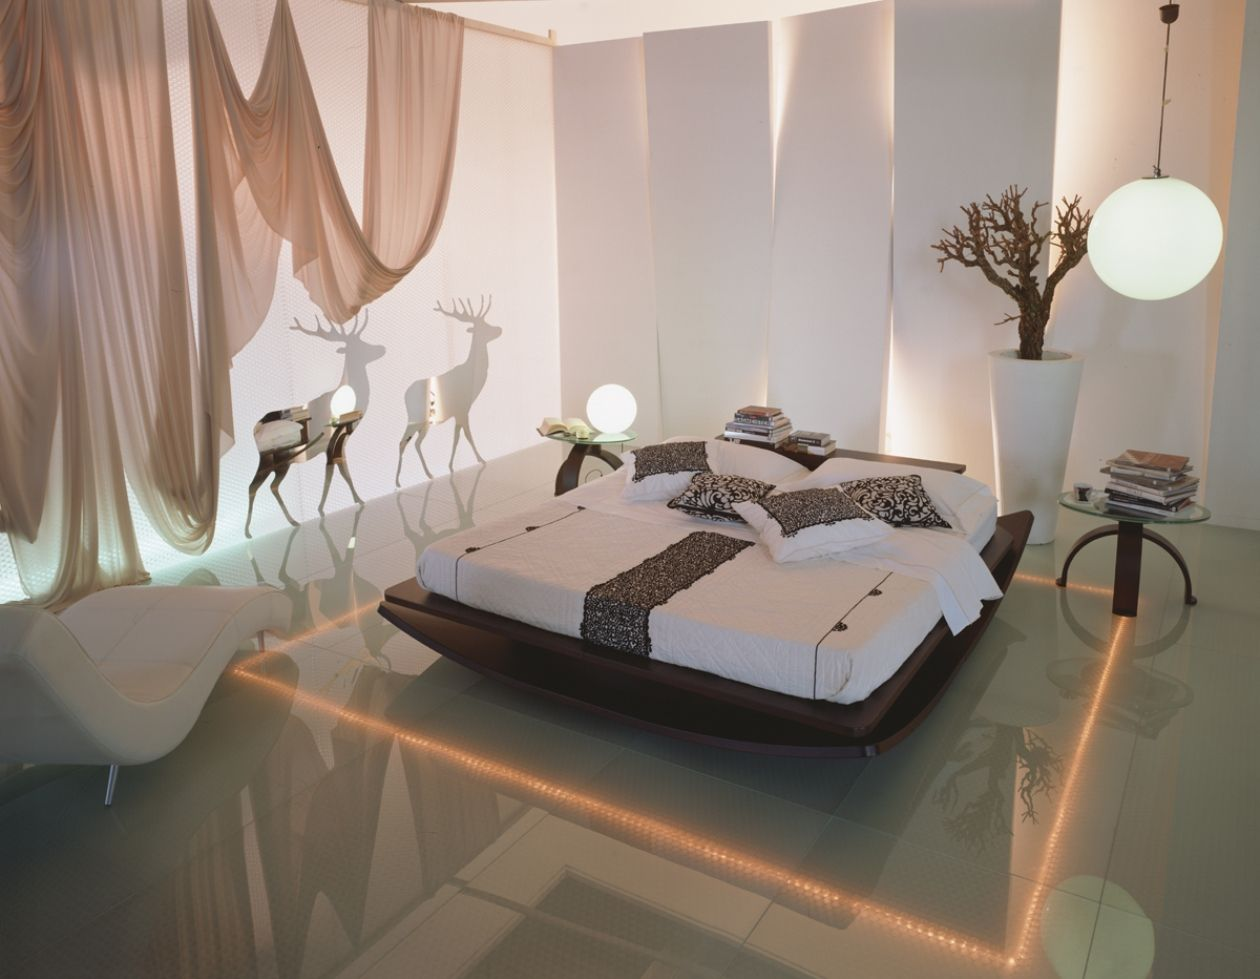 Bedroom Lighting Design Ideas Different Decor 6 On Bedroom Design Ideas